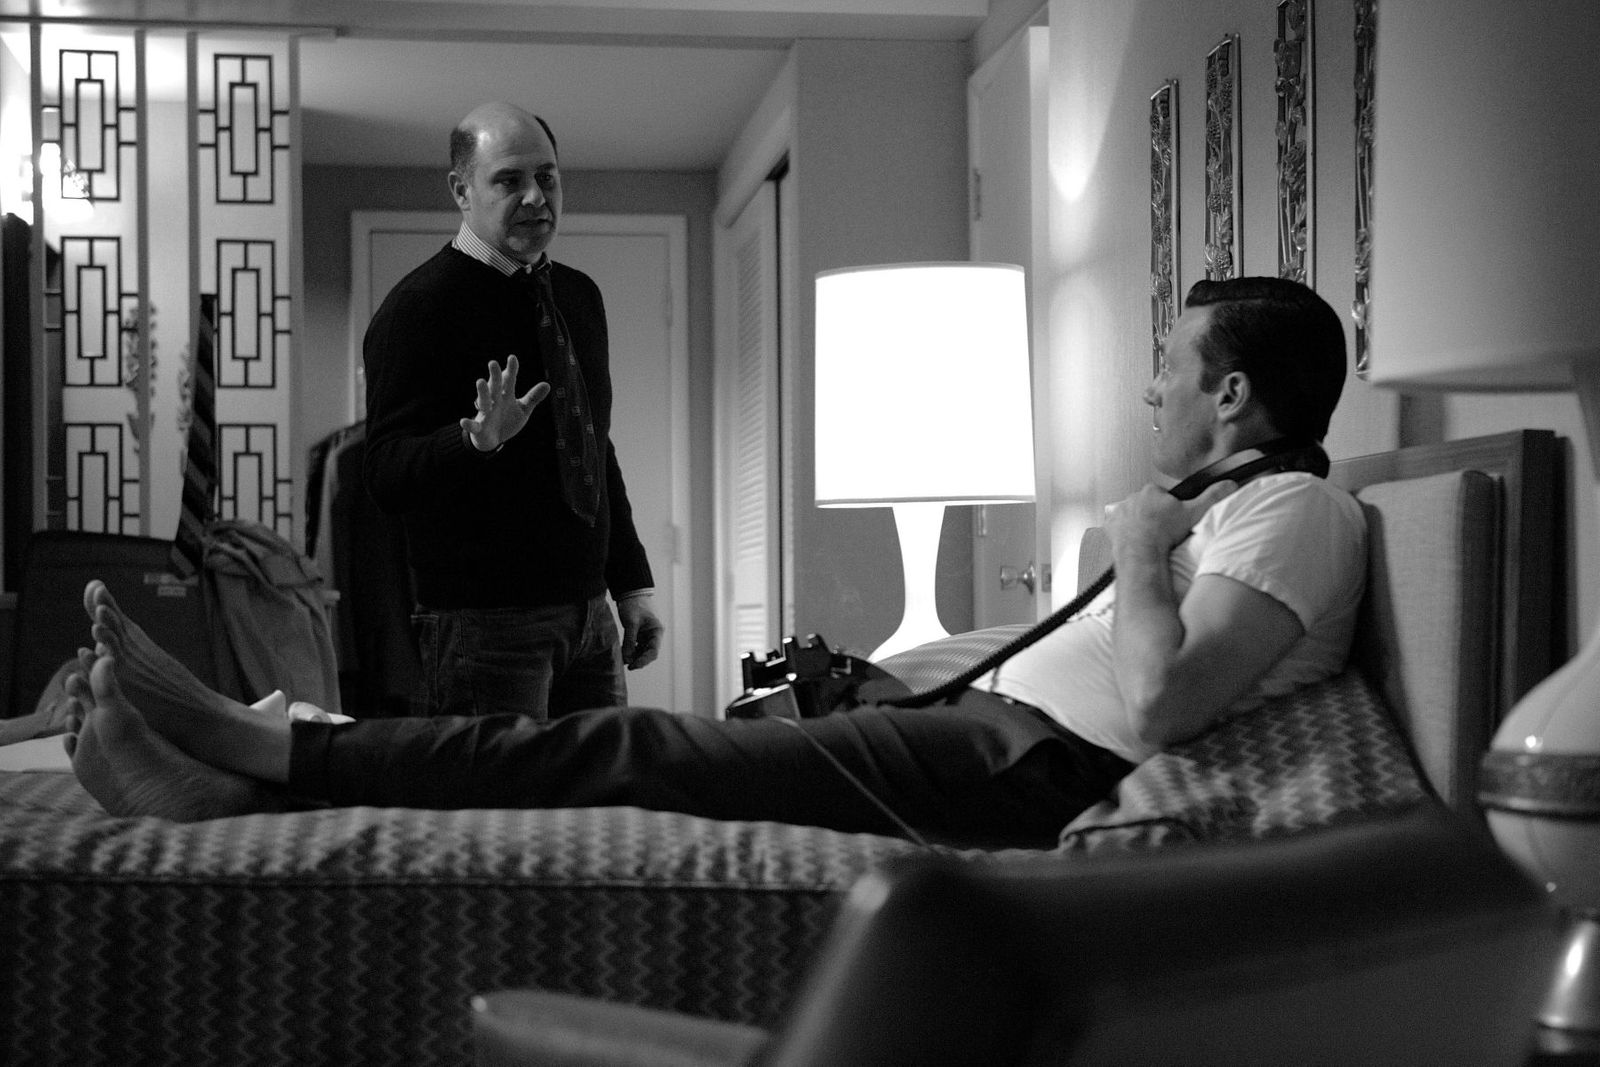 Jon Hamm + Matthew Weiner on the set of Mad Men